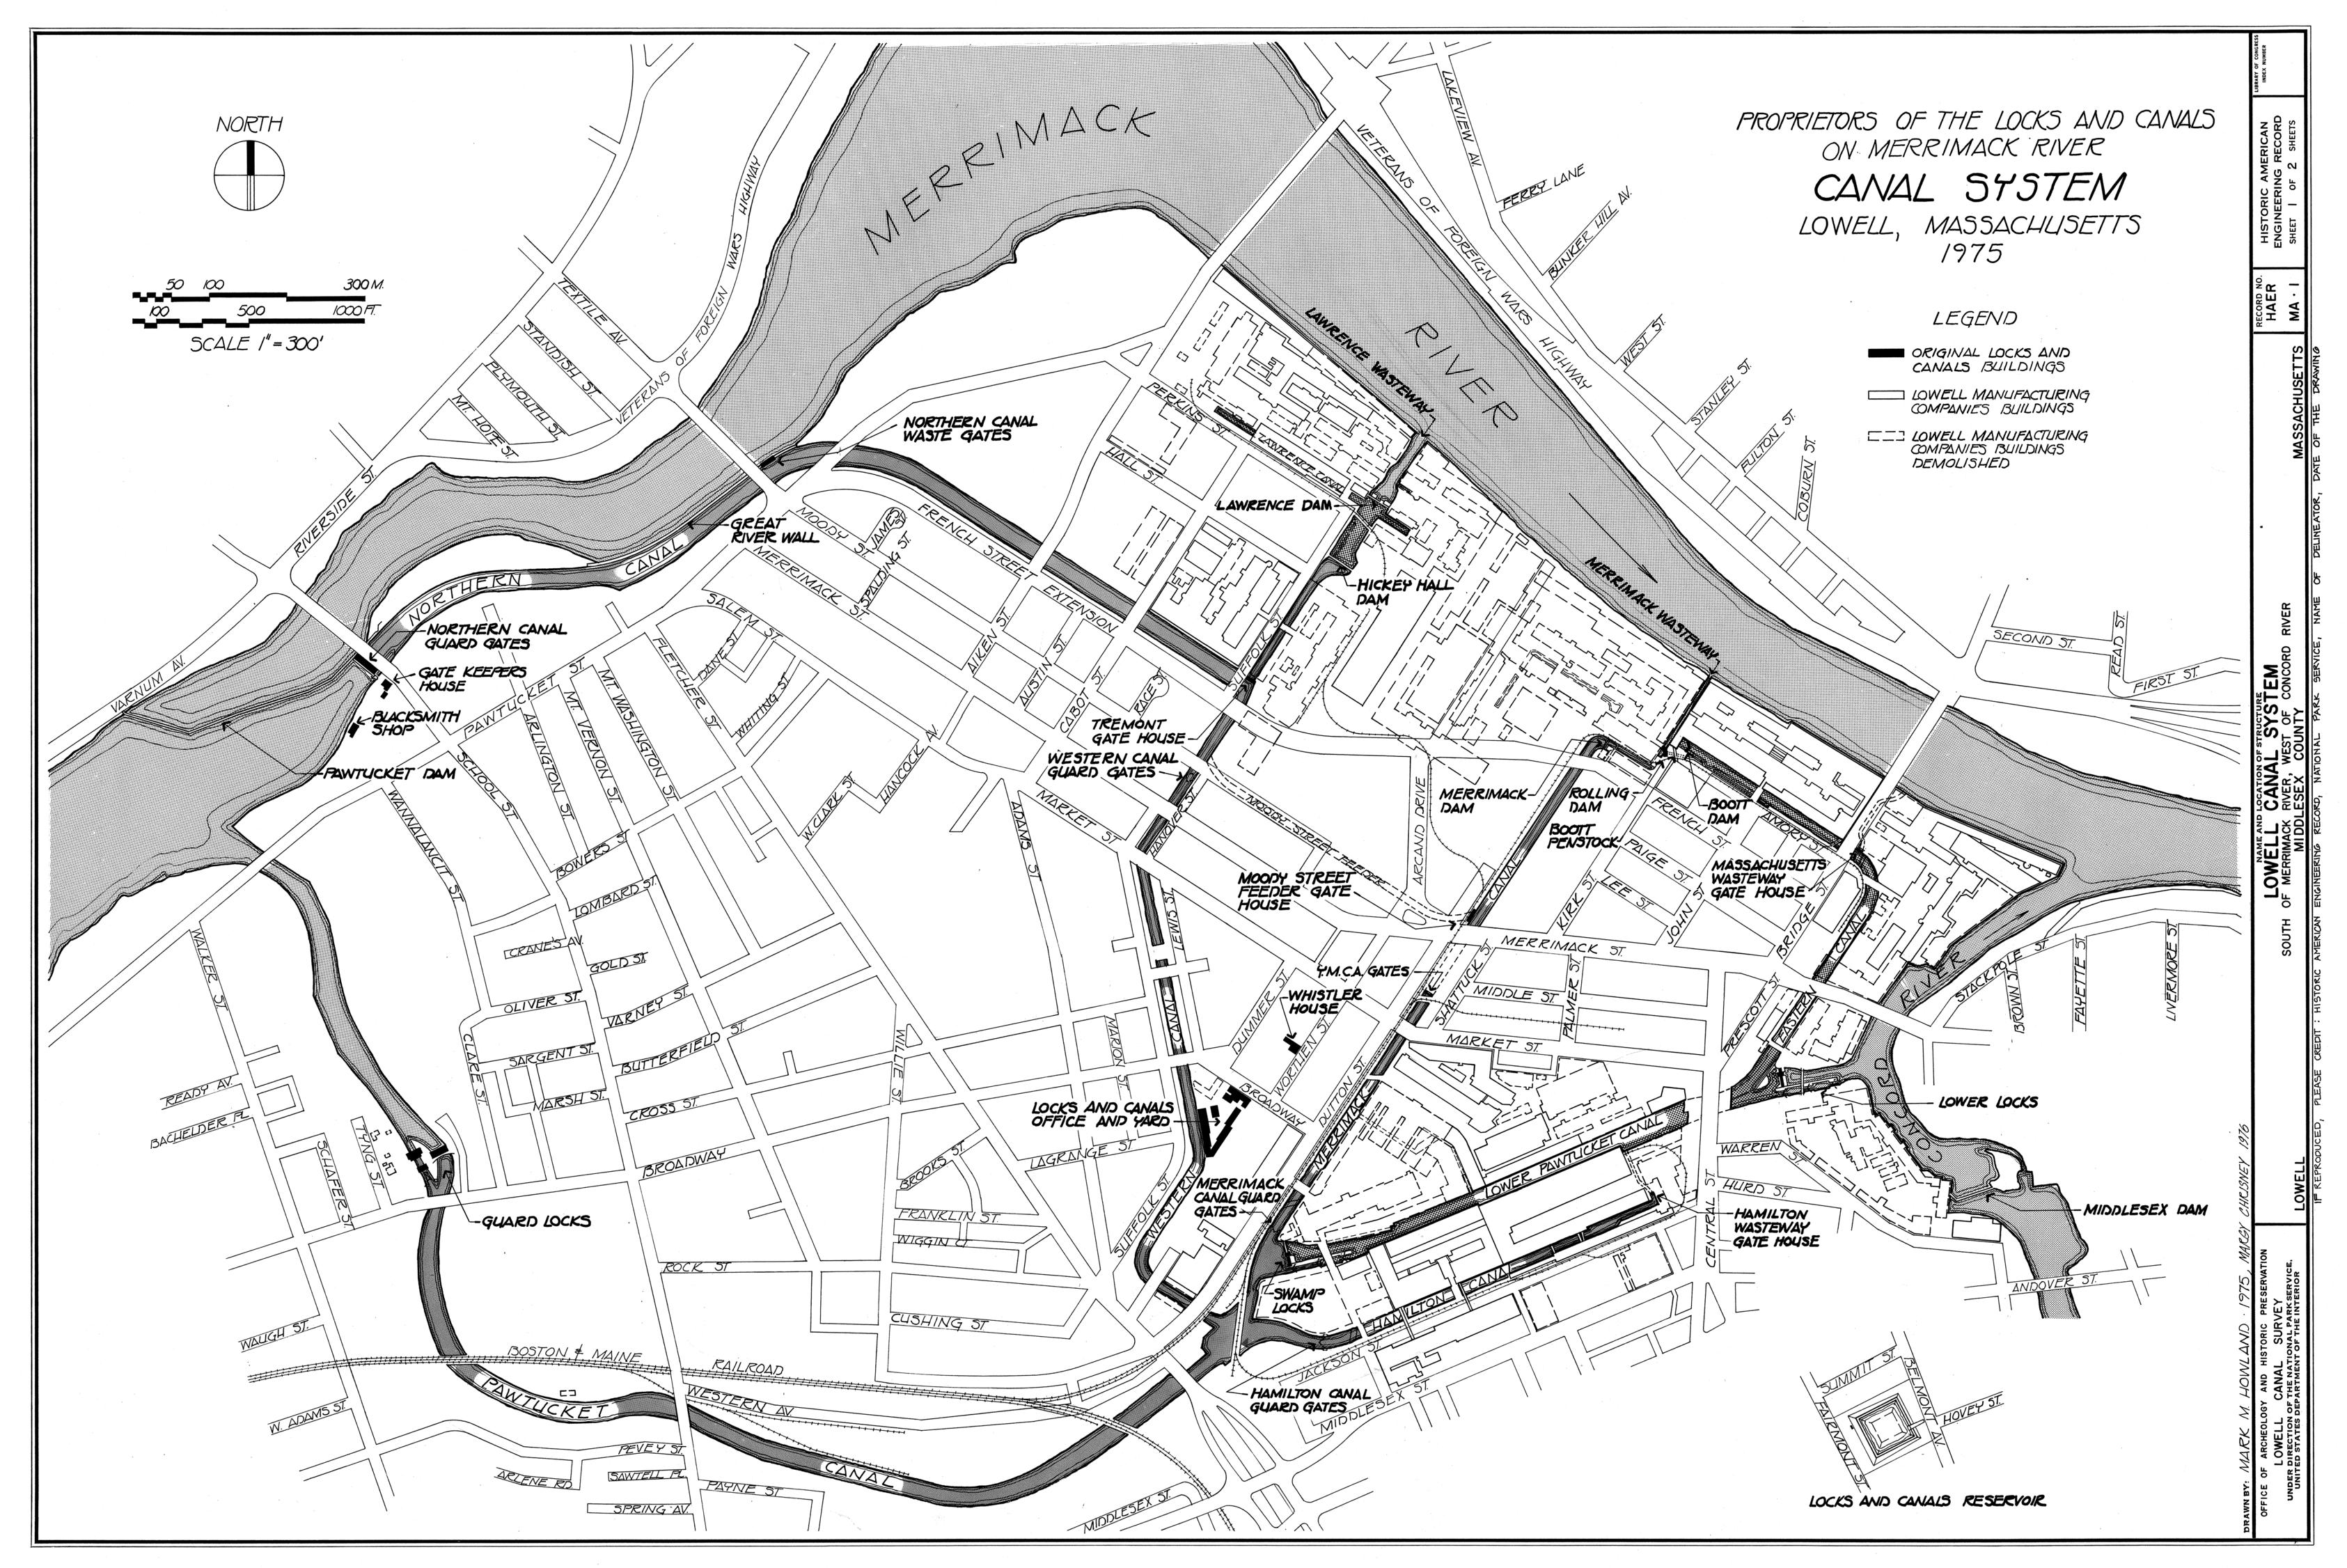 File 1975 Map Of Canal System In Lowell Massachusetts Png